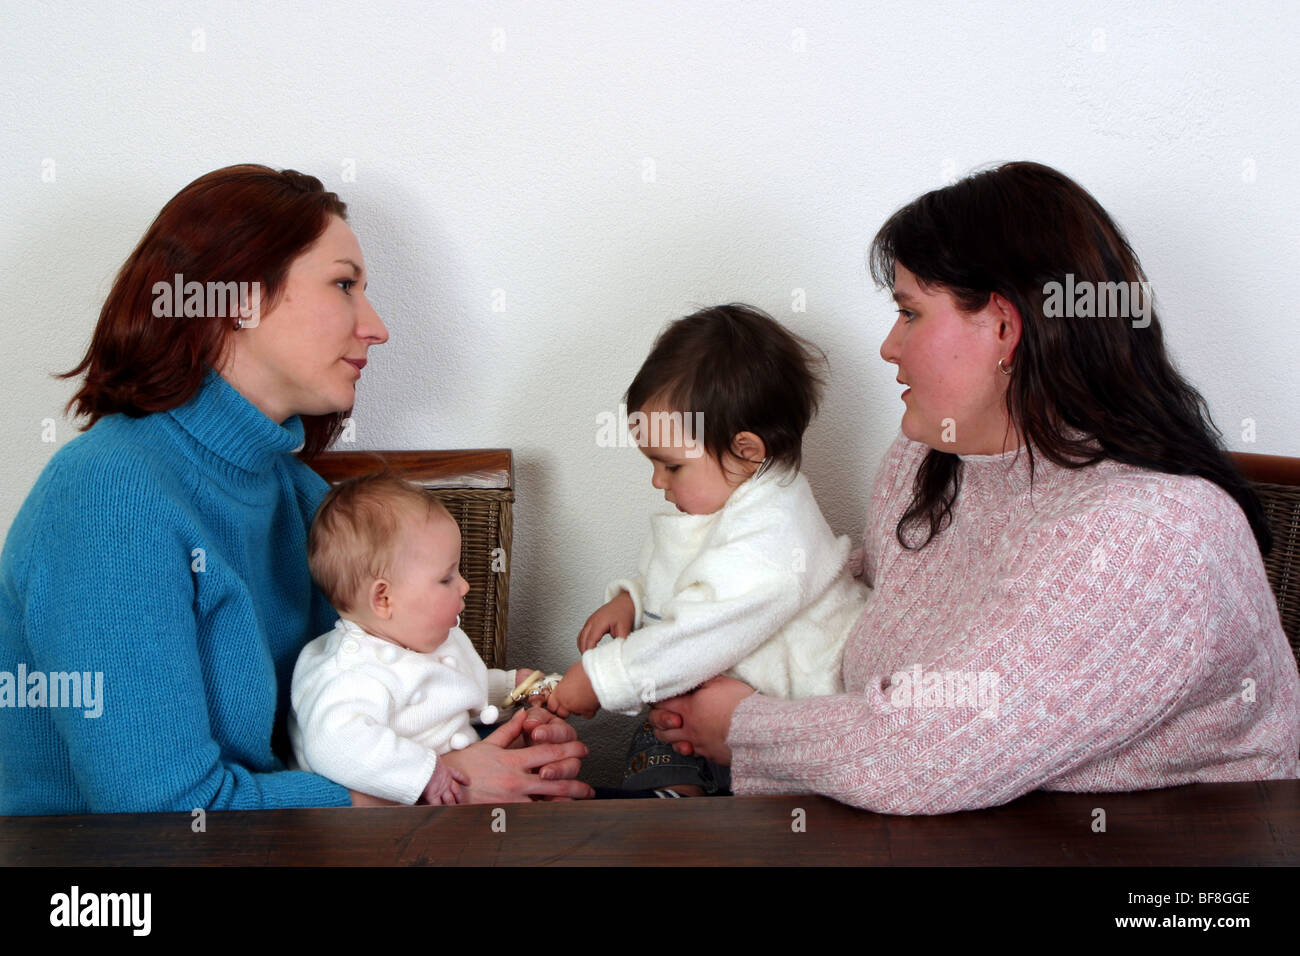 Young mothers talking  sincere at home and holding babies. - Stock Image